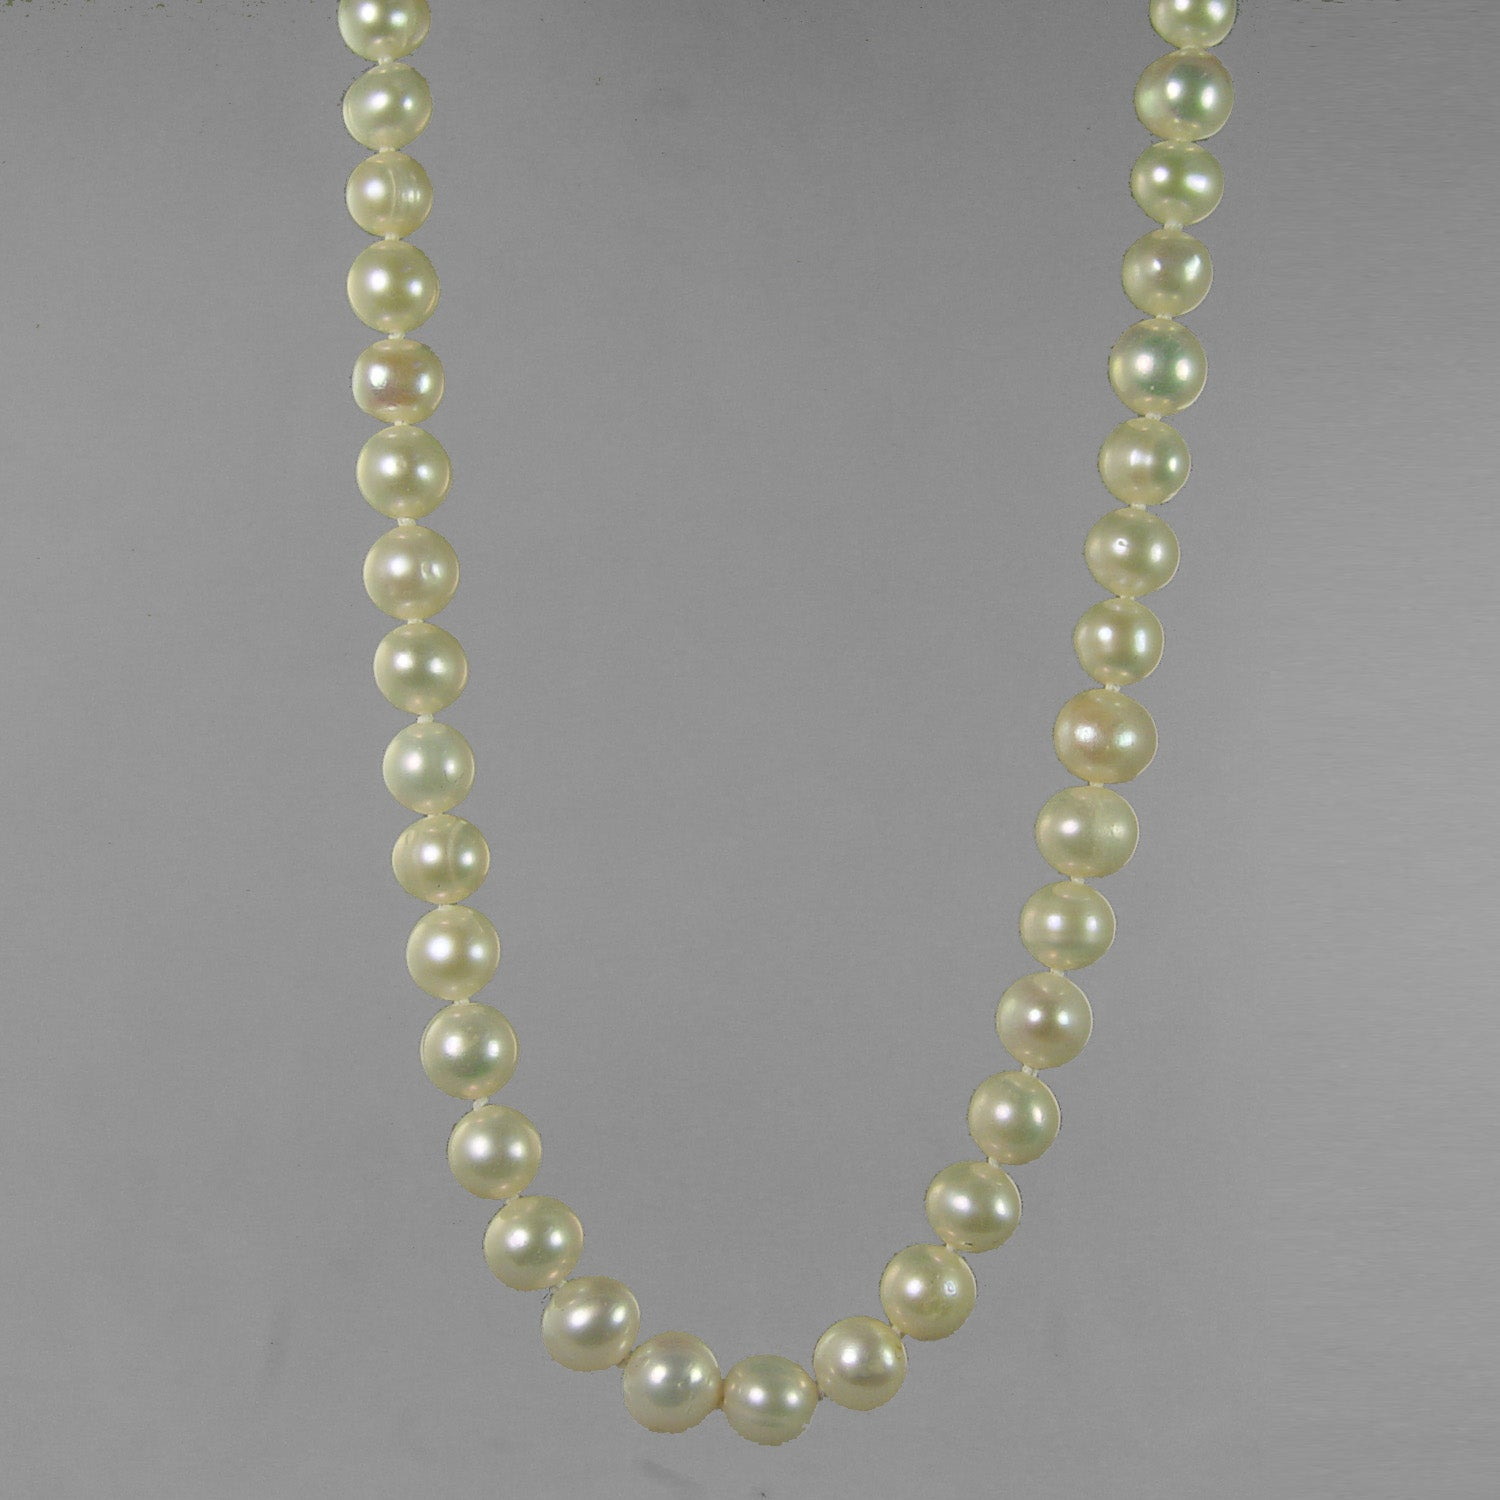 "Pearl 8-8.5 mm Semi Round Knotted with Heart Clasp 20"" Necklace"